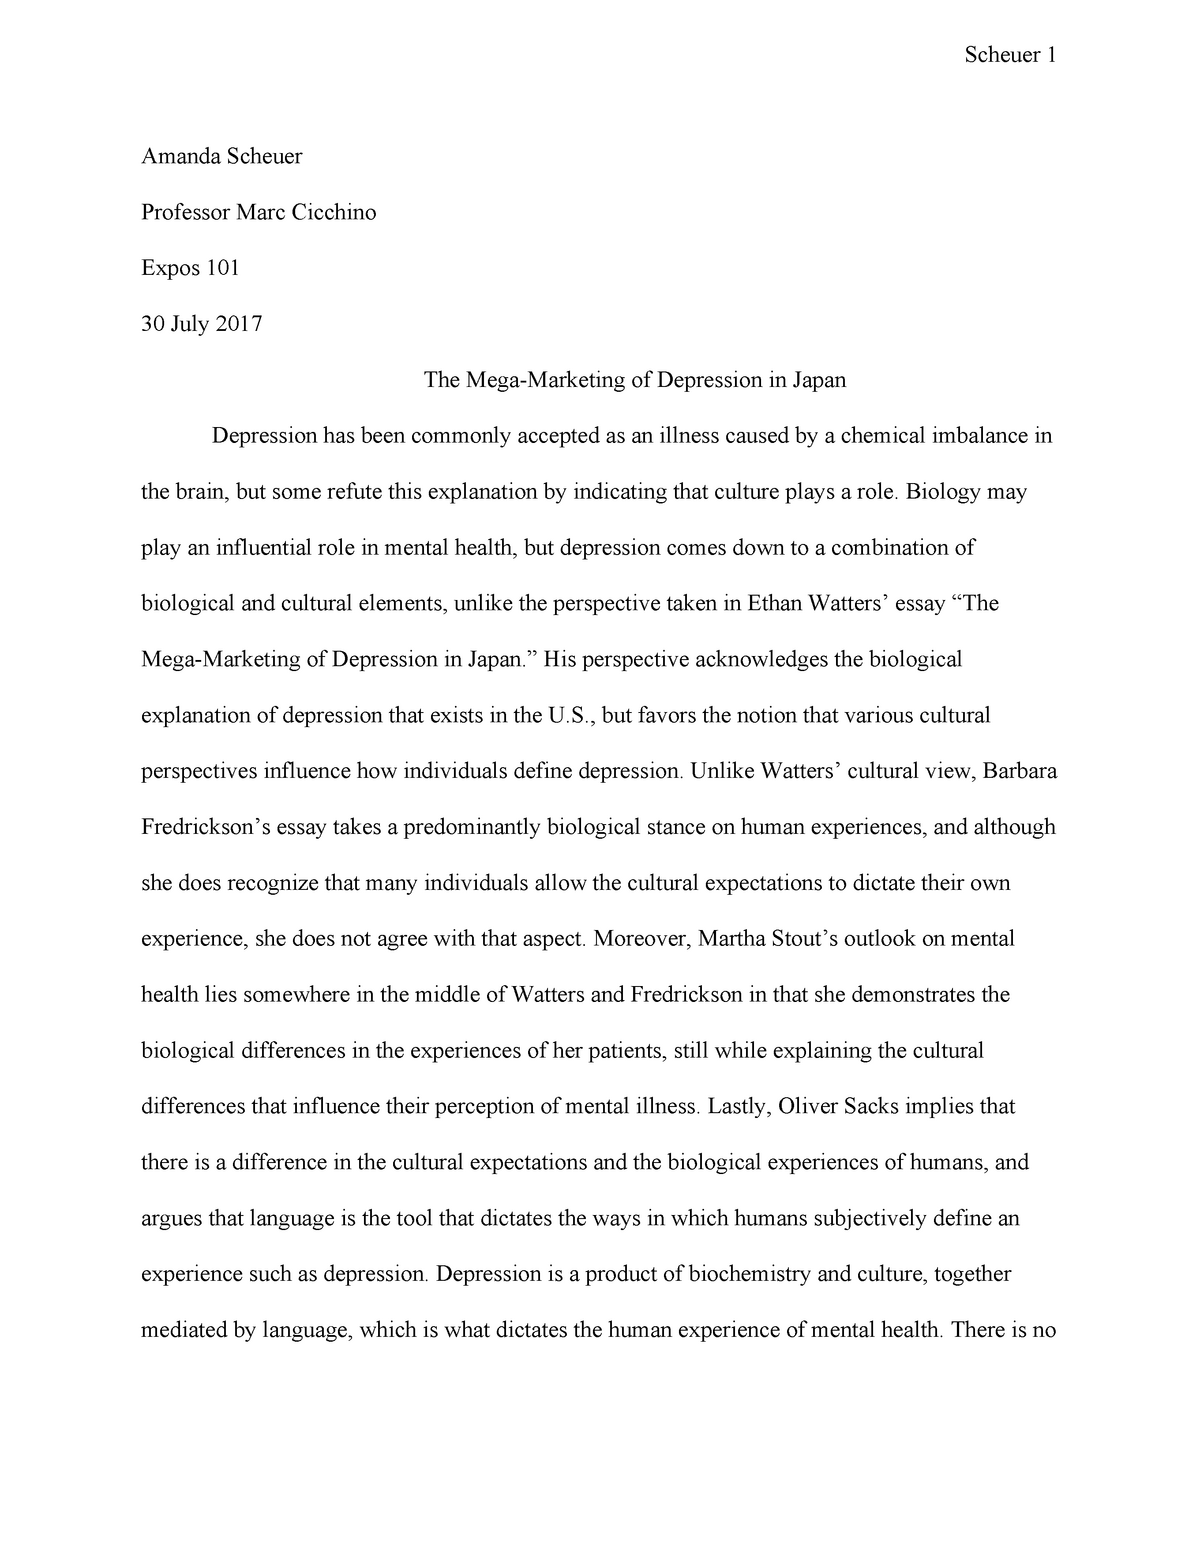 Essay about cloning - advantage and disadvantage